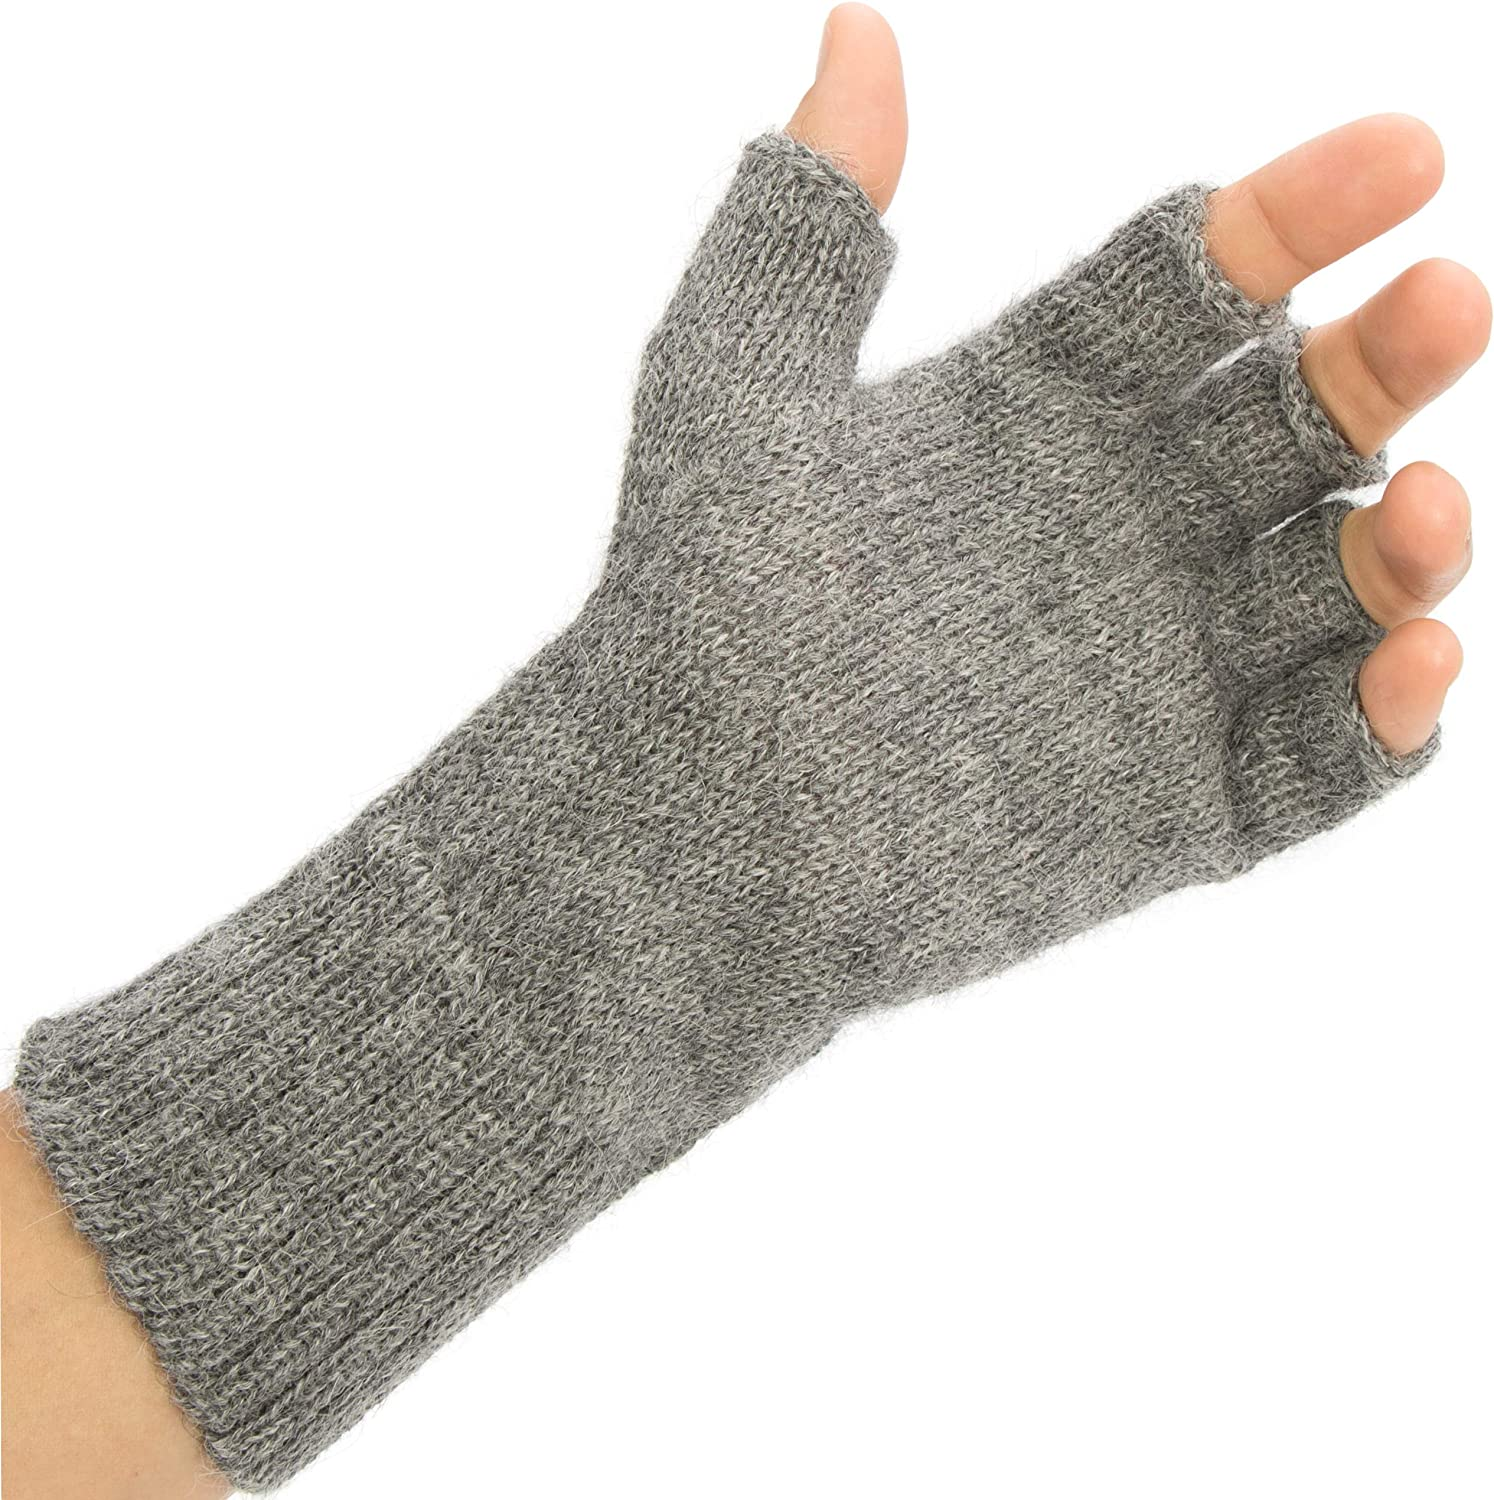 Non Elastic Wrist 100% Alpaca Fingerless Gloves - Best Natural Solution for Cold Hands for Women and Men